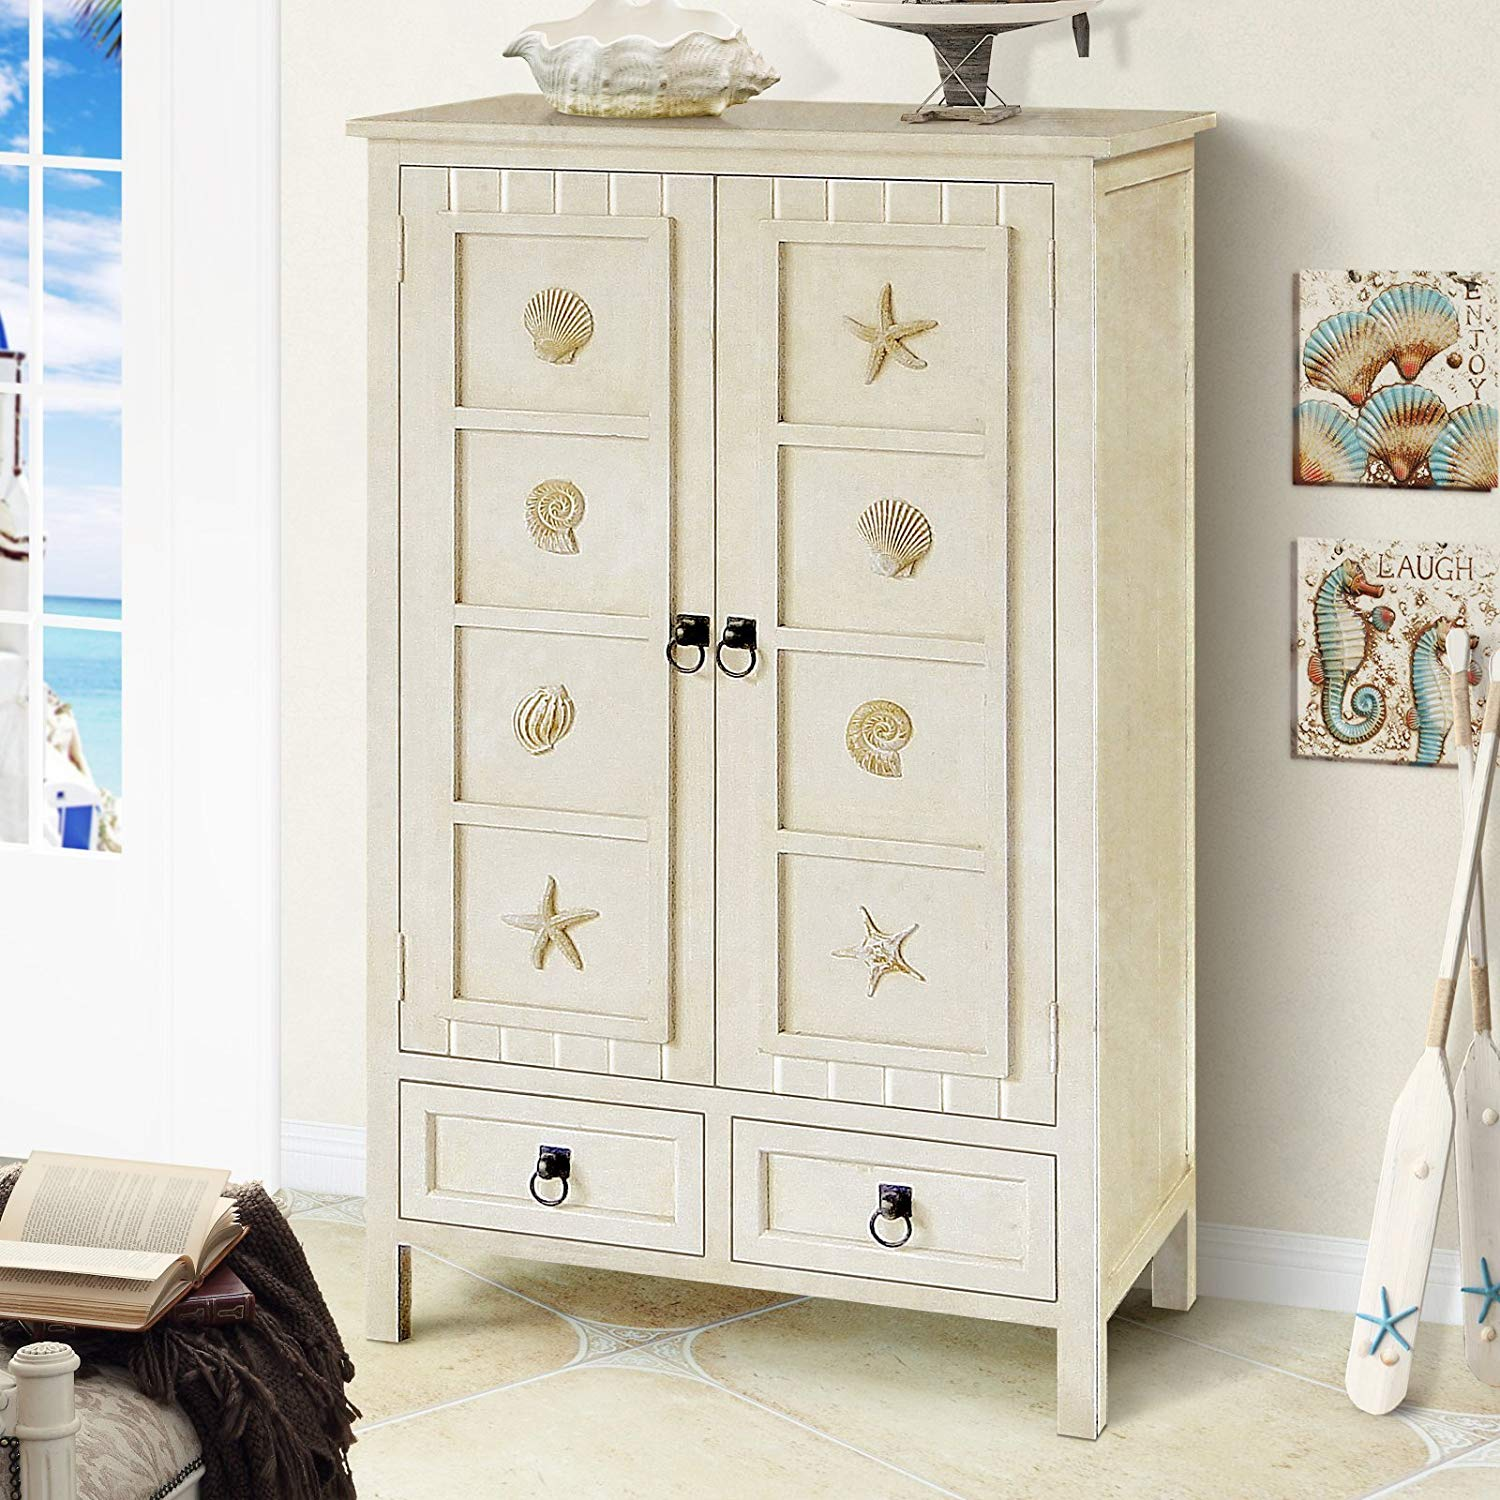 2 Drawer Chest, Sturdy Hardwood Frame Promises Natural Charm and Durability, Features Two Doors and Two Drawers, Interior Shelving Provides Organizational Flexibility, White + Expert Guide